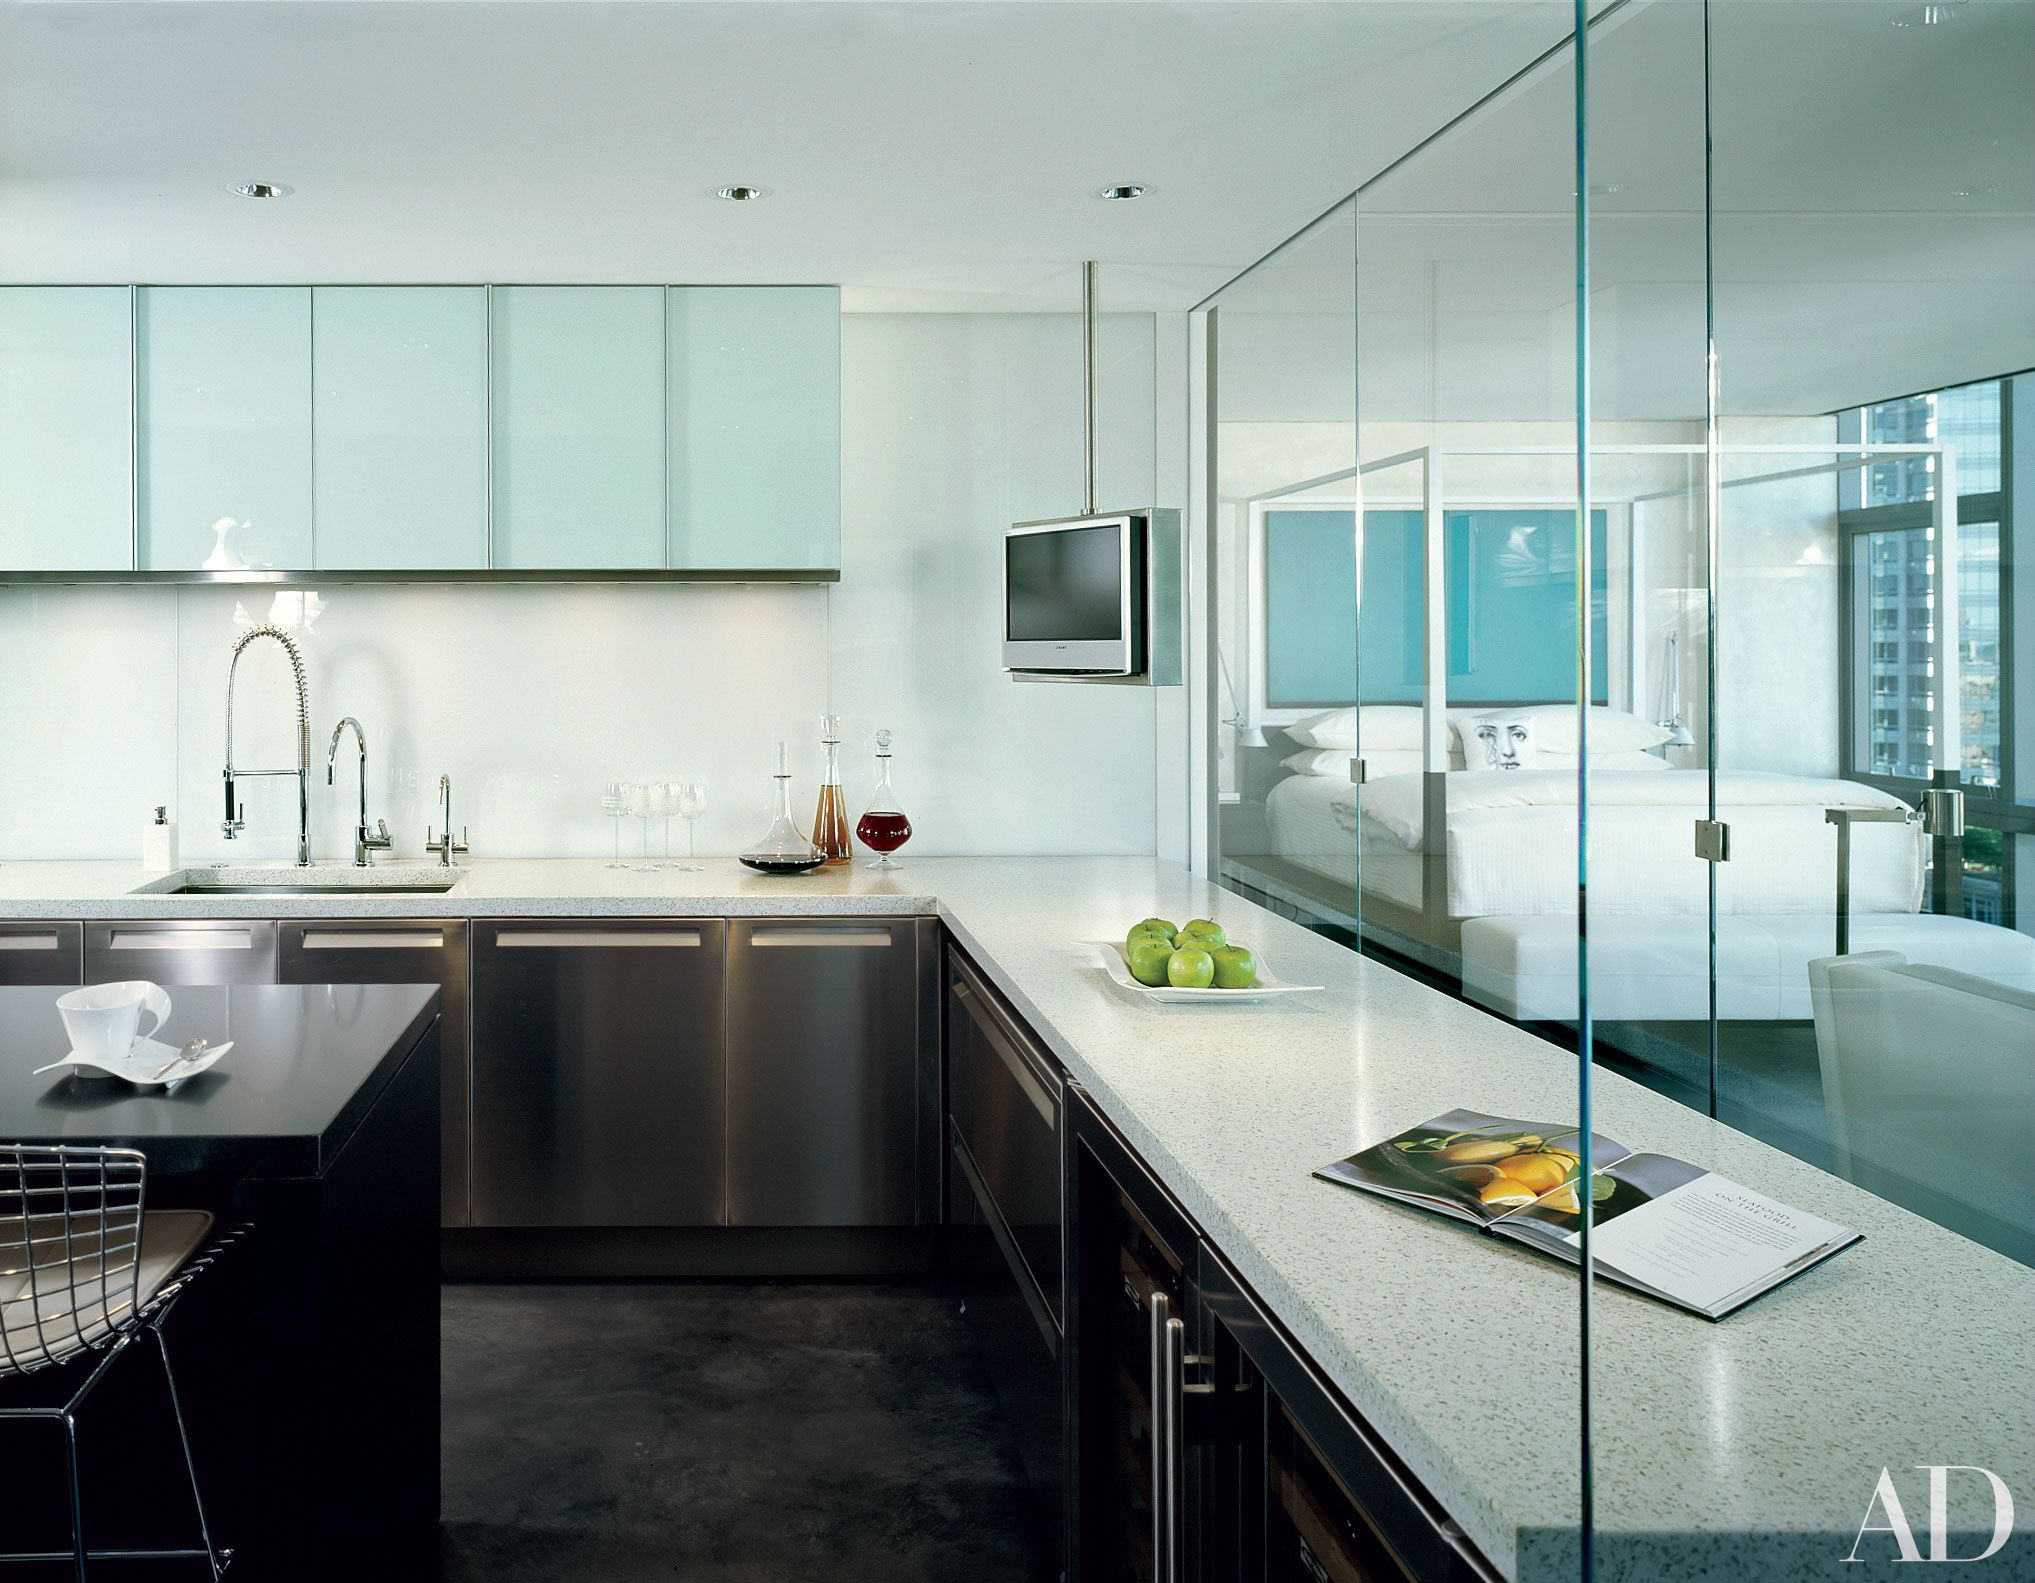 11 Stunning Minimalist Kitchens From The AD Archives | Architectural ...